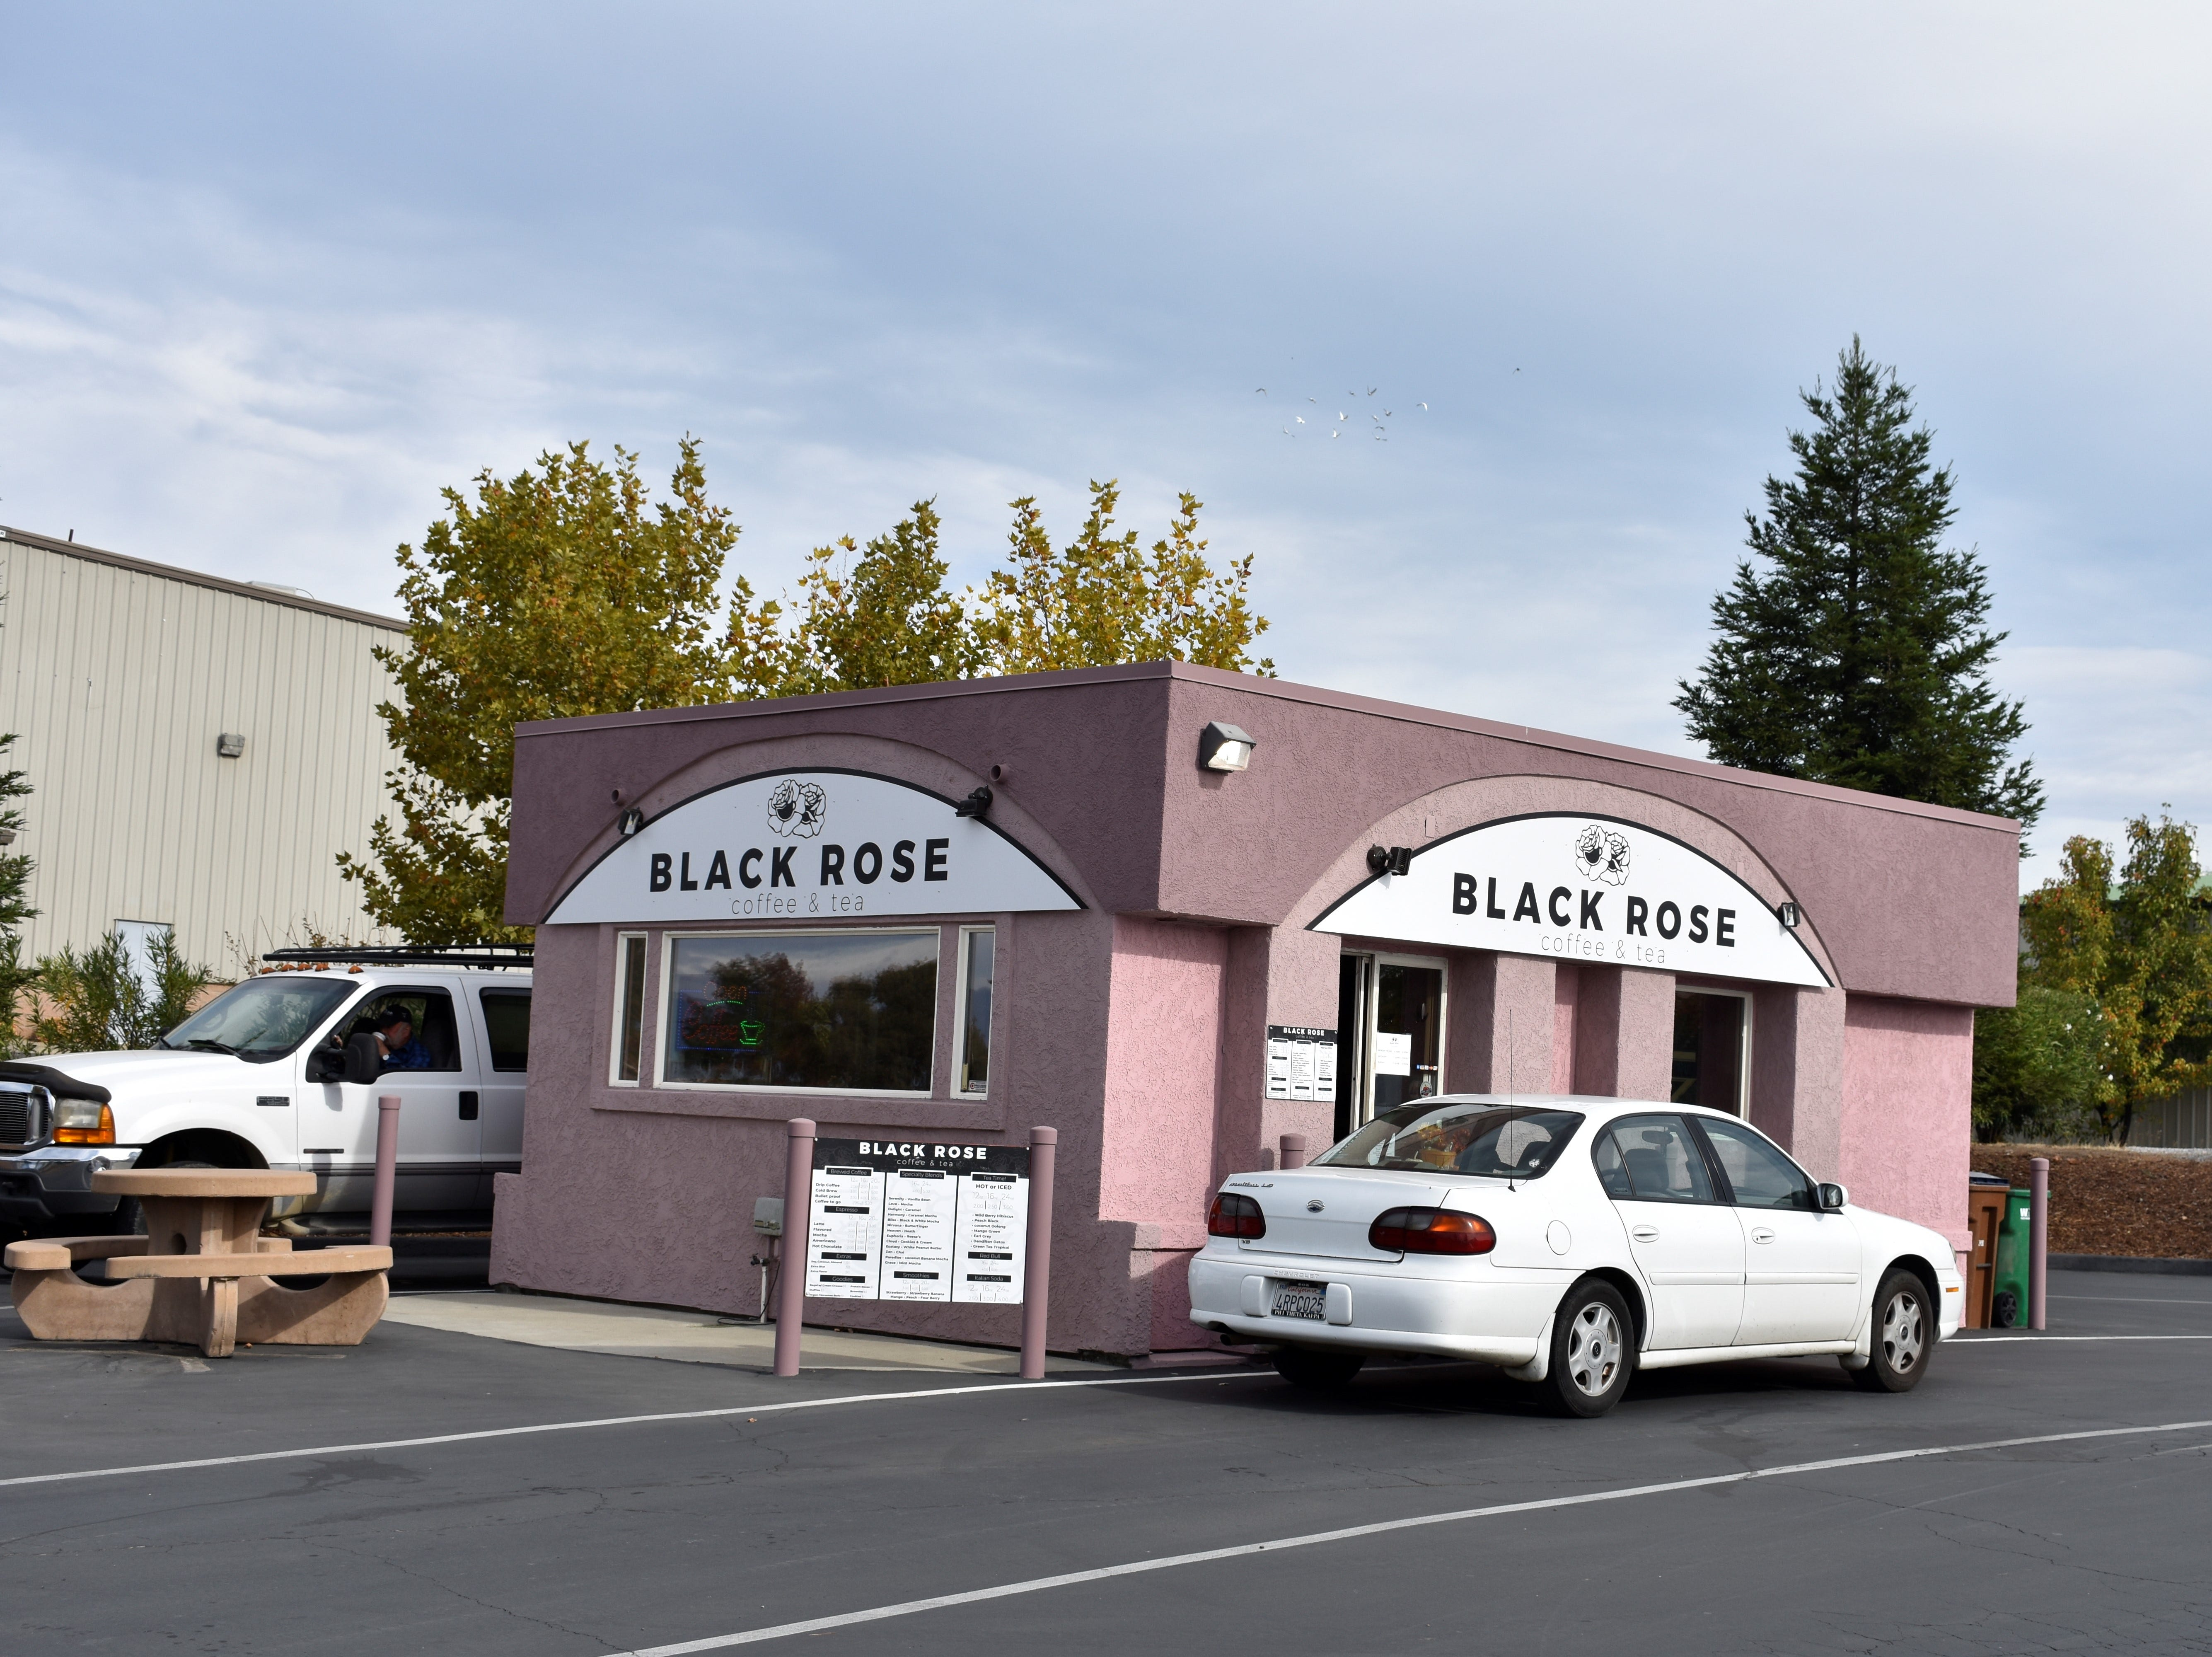 The Black Rose coffee kiosk on Old Oregon Trail in east Redding.